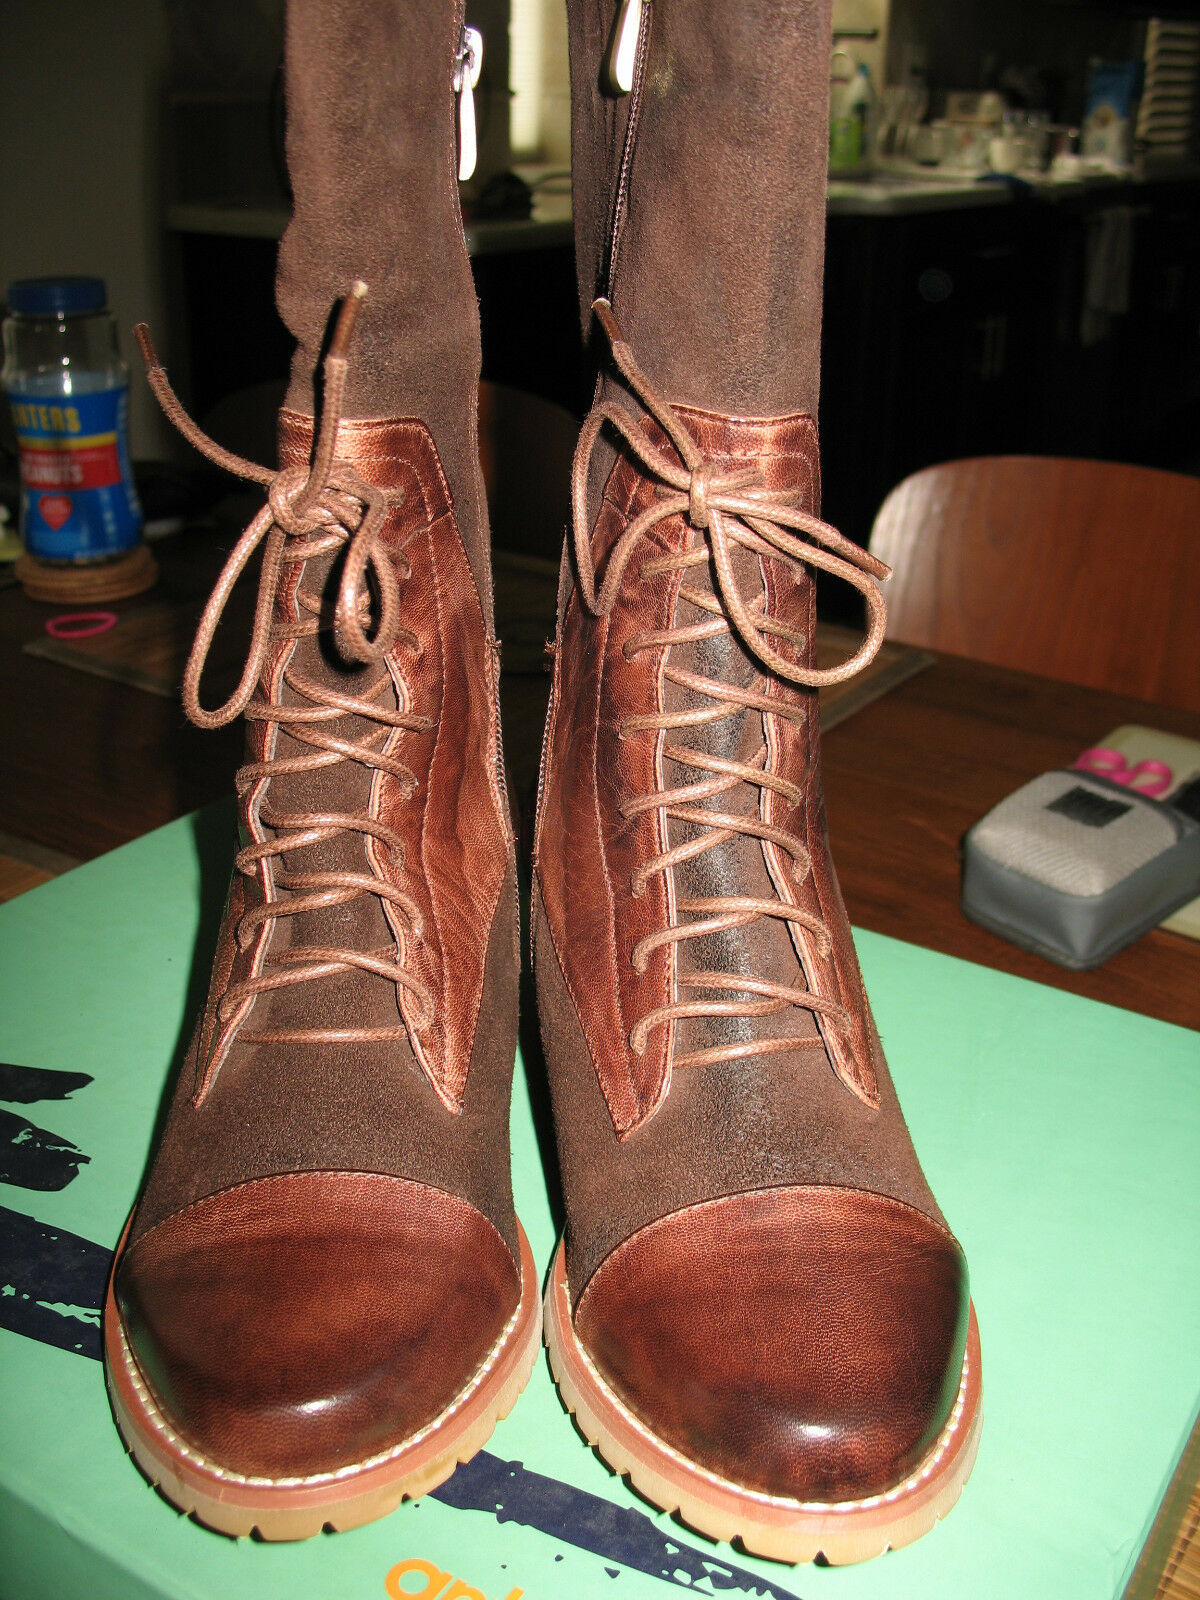 NEW in Box Antelope Partial Lace-Up Boot Size 36M COFFEE